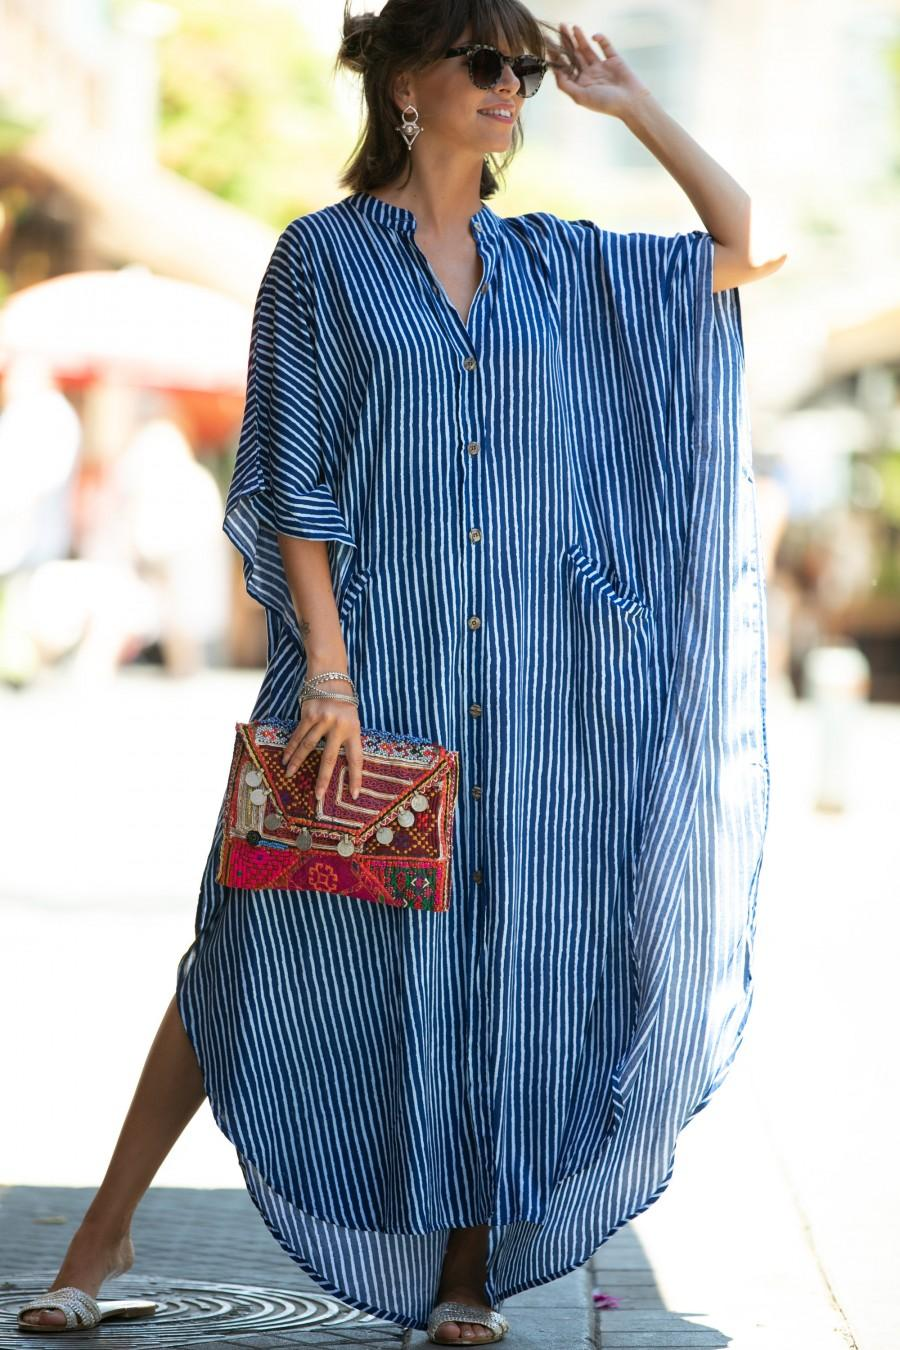 Hochzeit - Blue & White Striped Oversize Kaftan Dress, Bohemian Hipster Buttoned Caftan with Pockets, Summer Urban Vacation Hippie Plus size Maxi Dress